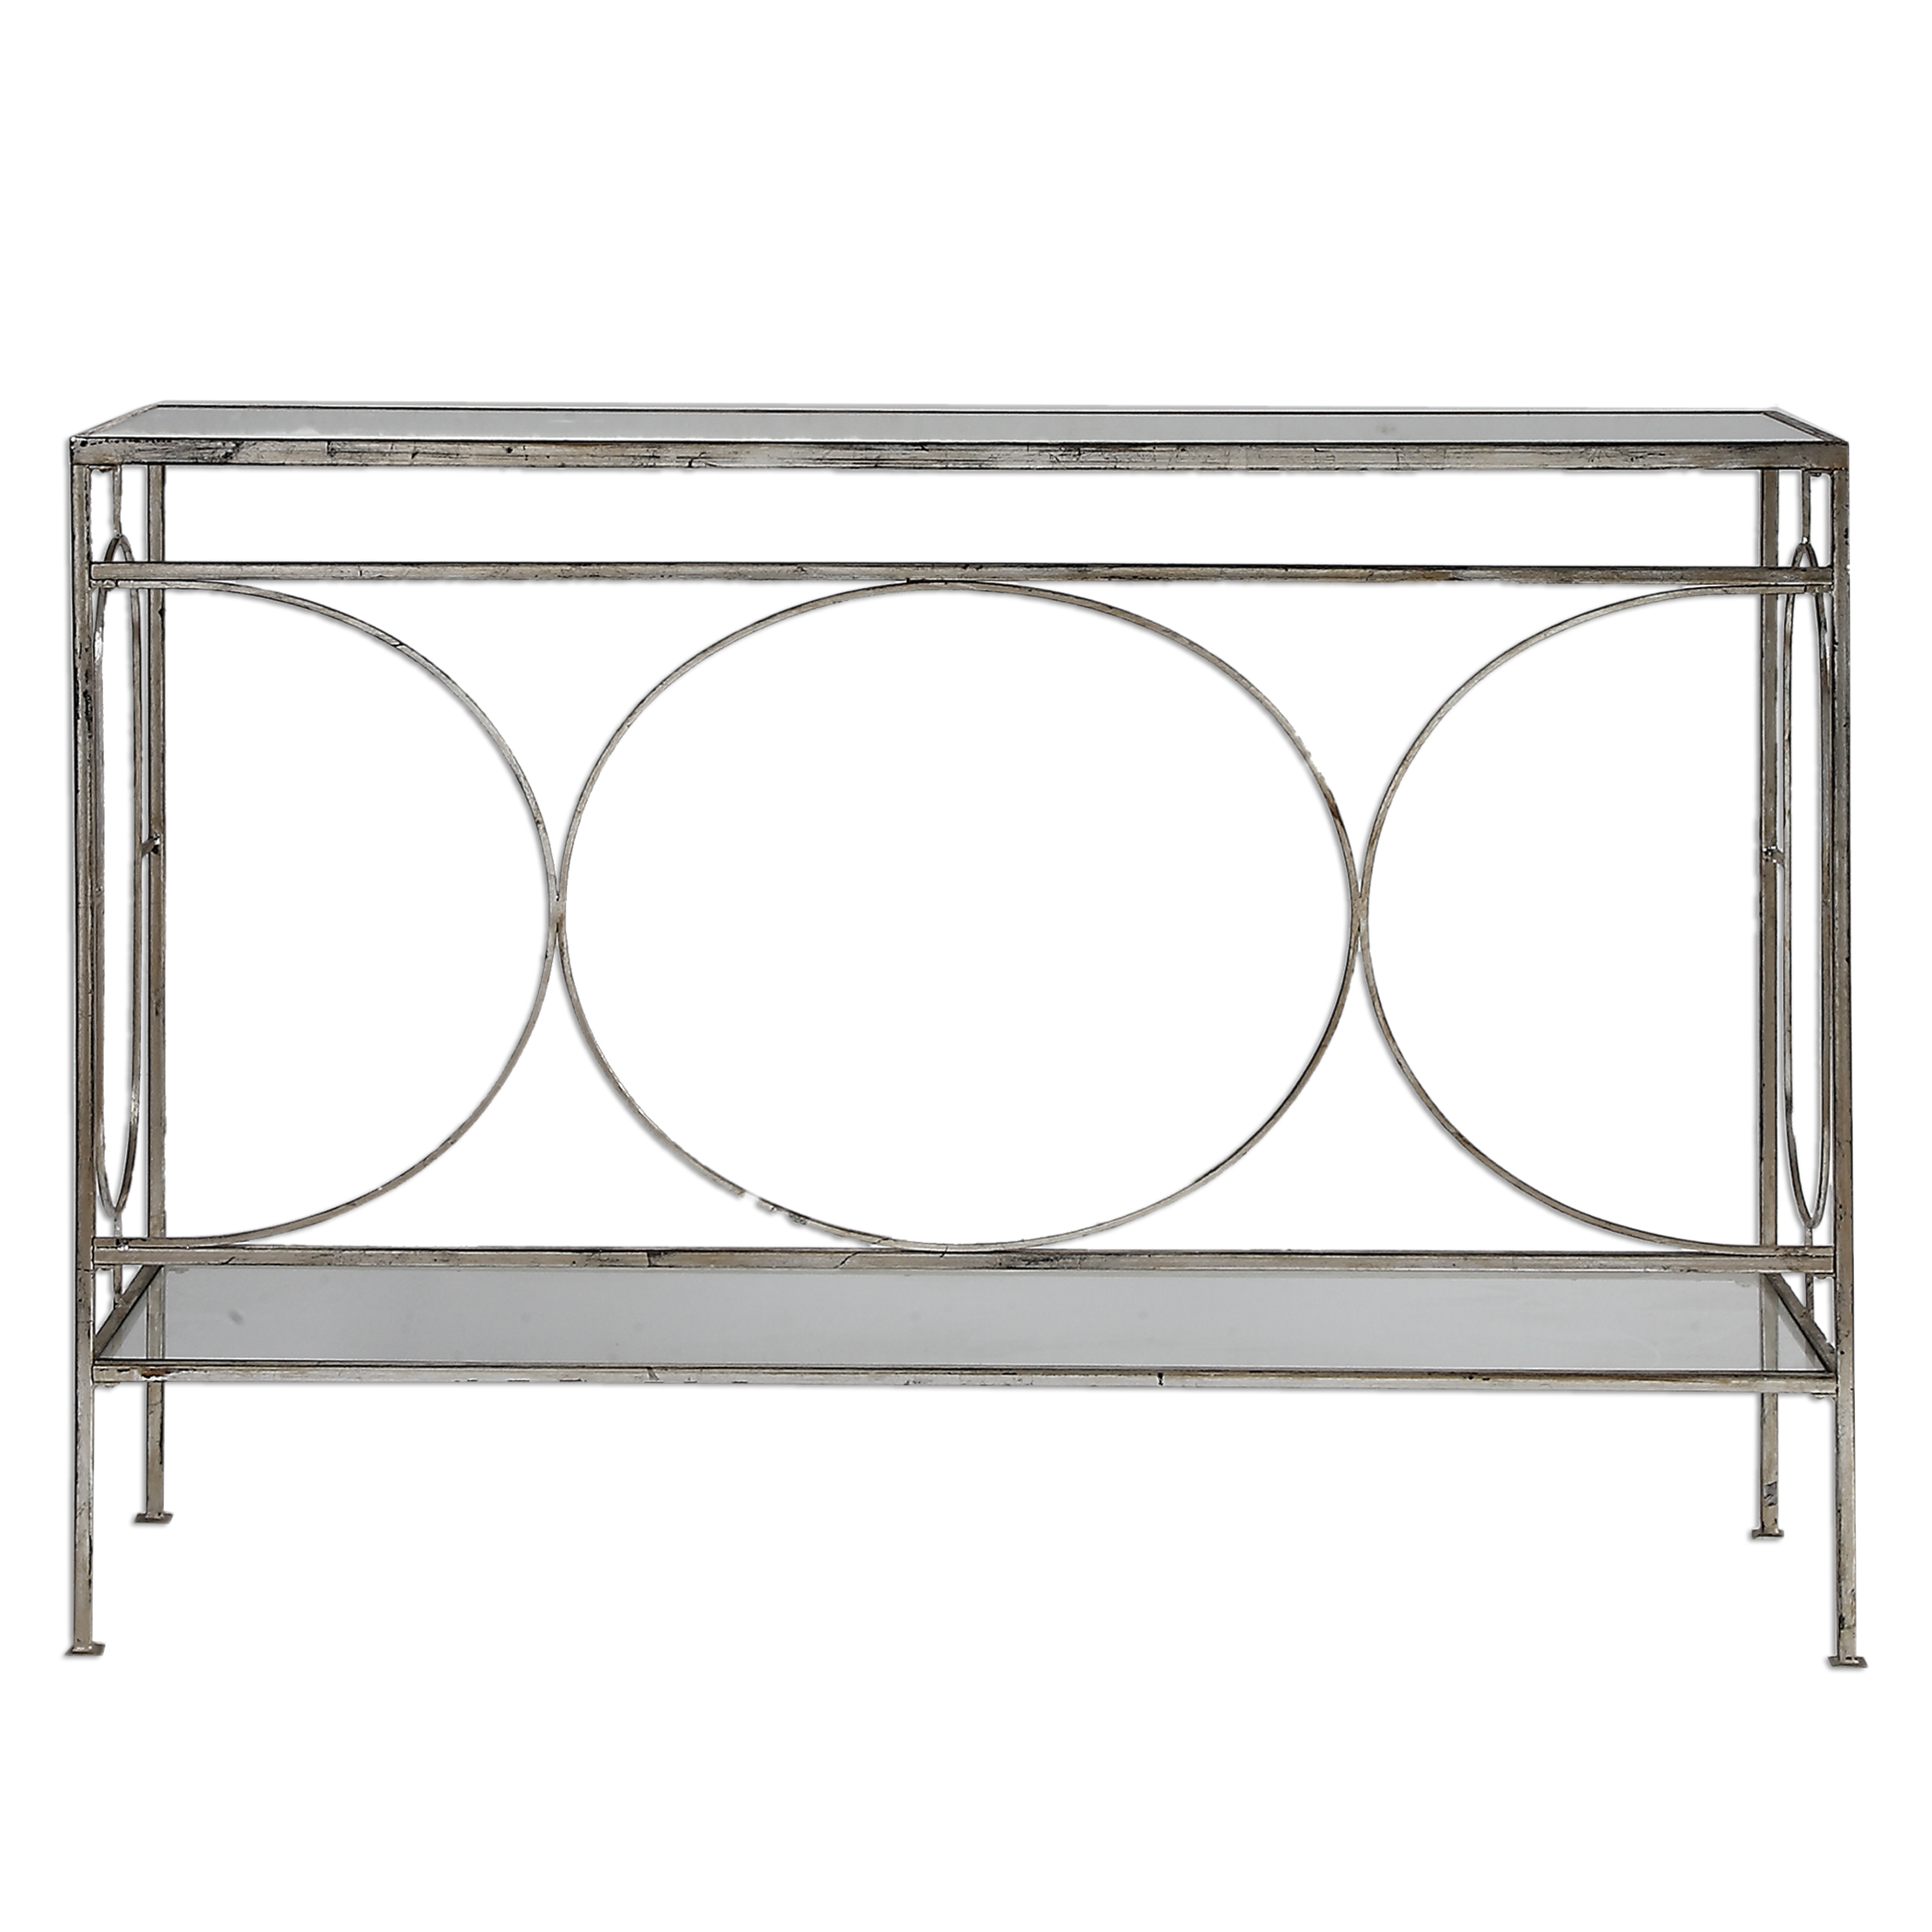 Uttermost Accent Furniture Luano Silver Console Table - Item Number: 24541